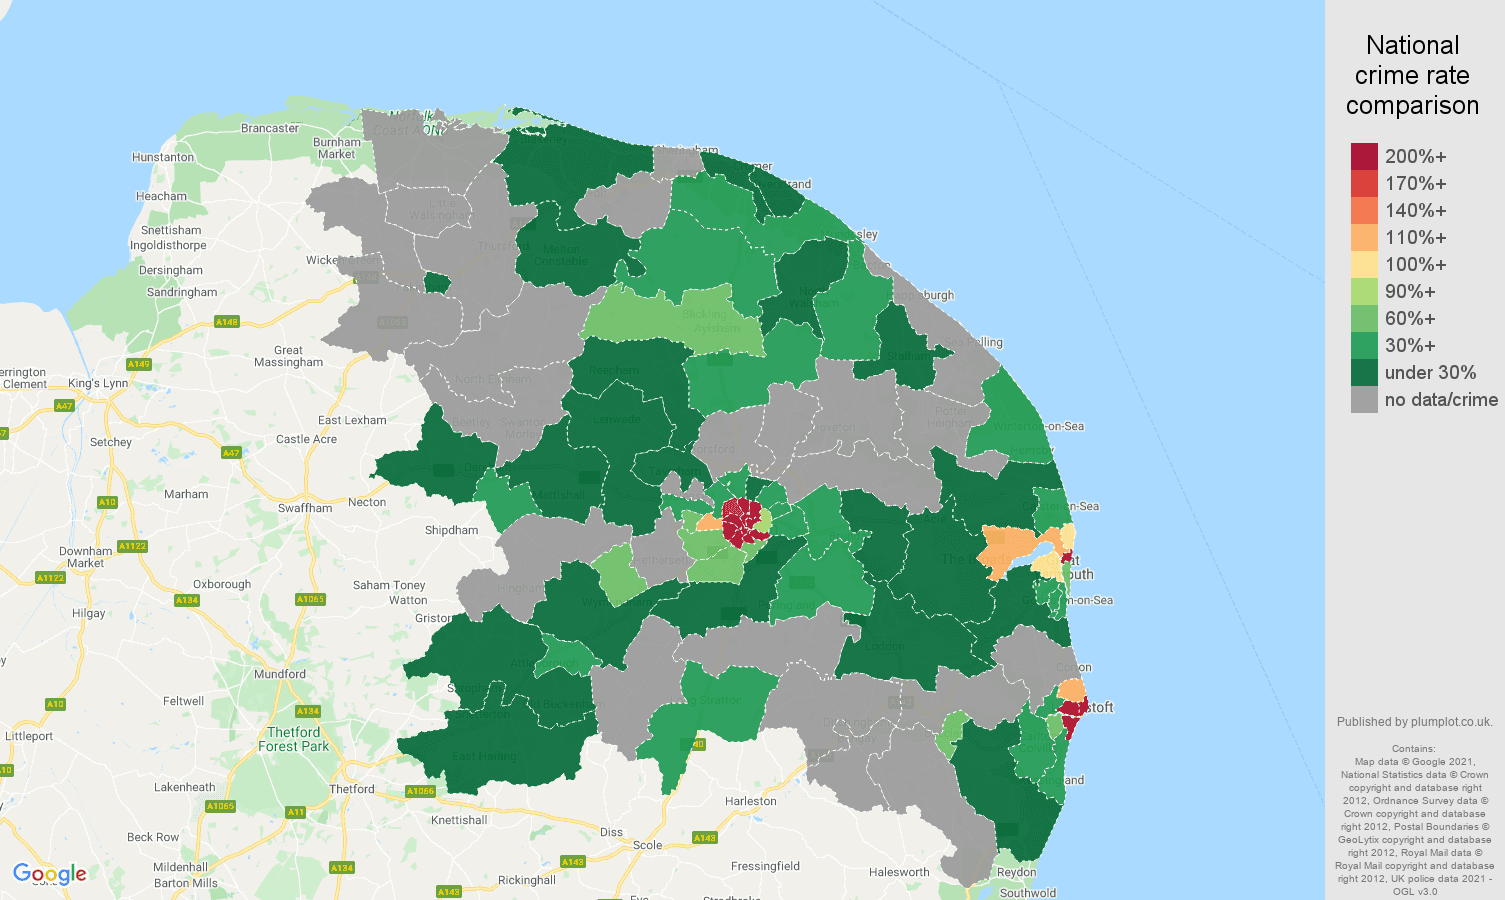 Norwich bicycle theft crime rate comparison map